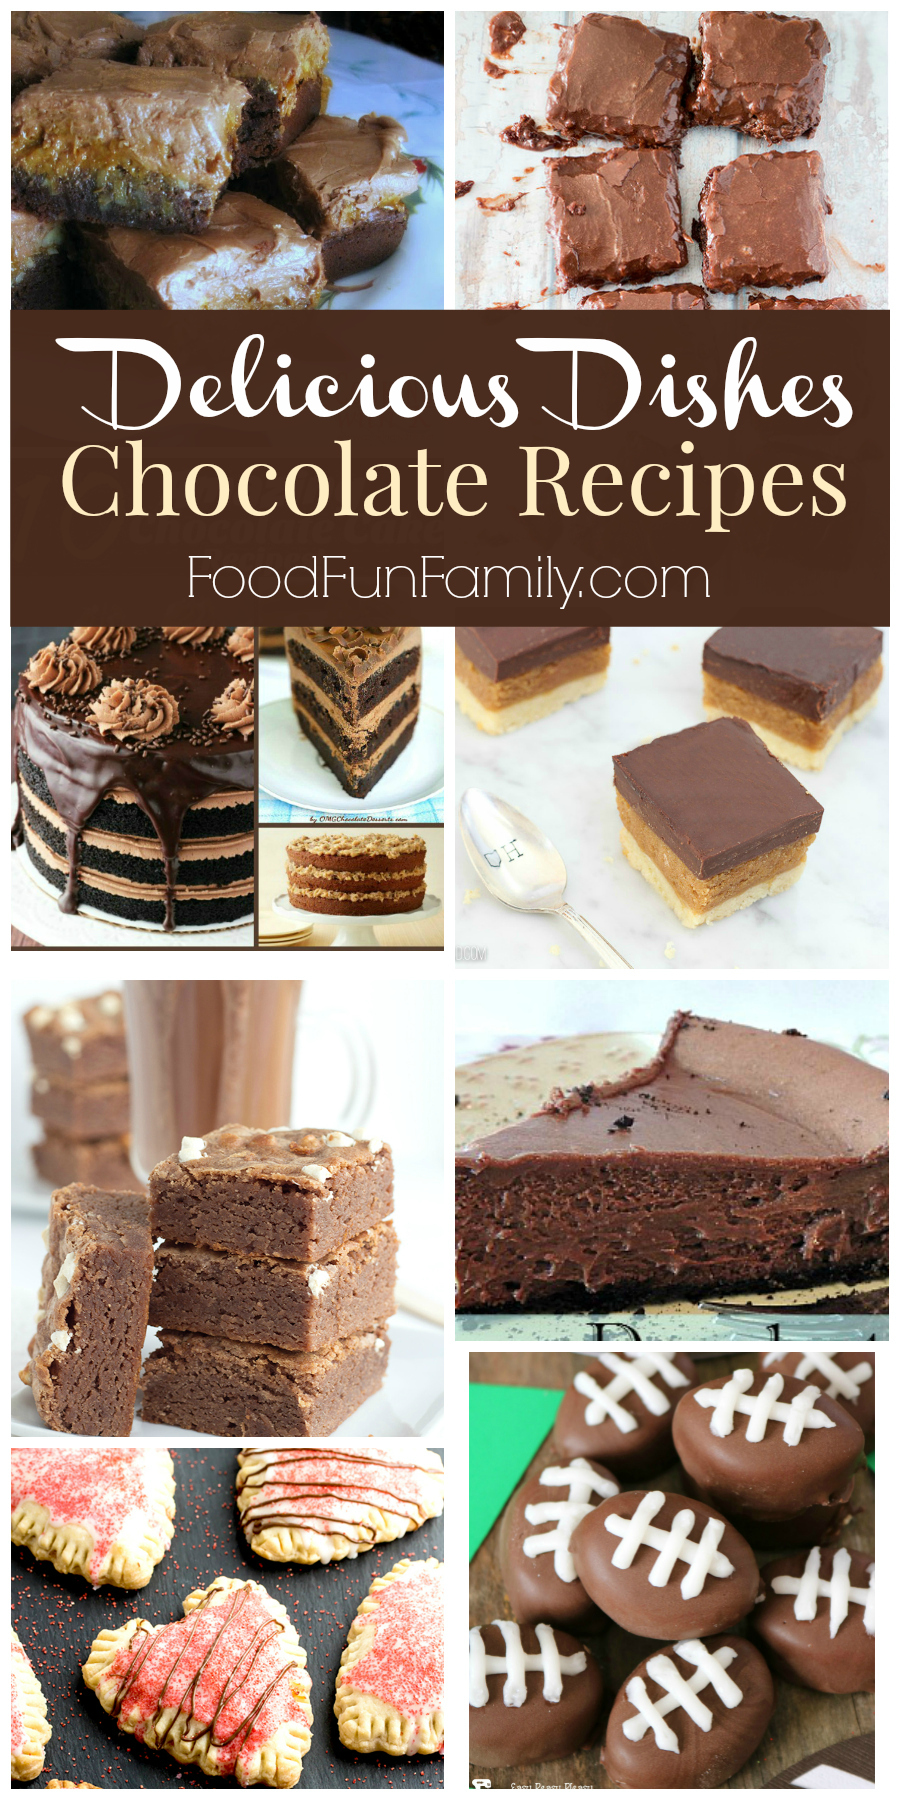 Delicious Dishes Chocolate Recipes from Food Fun Family